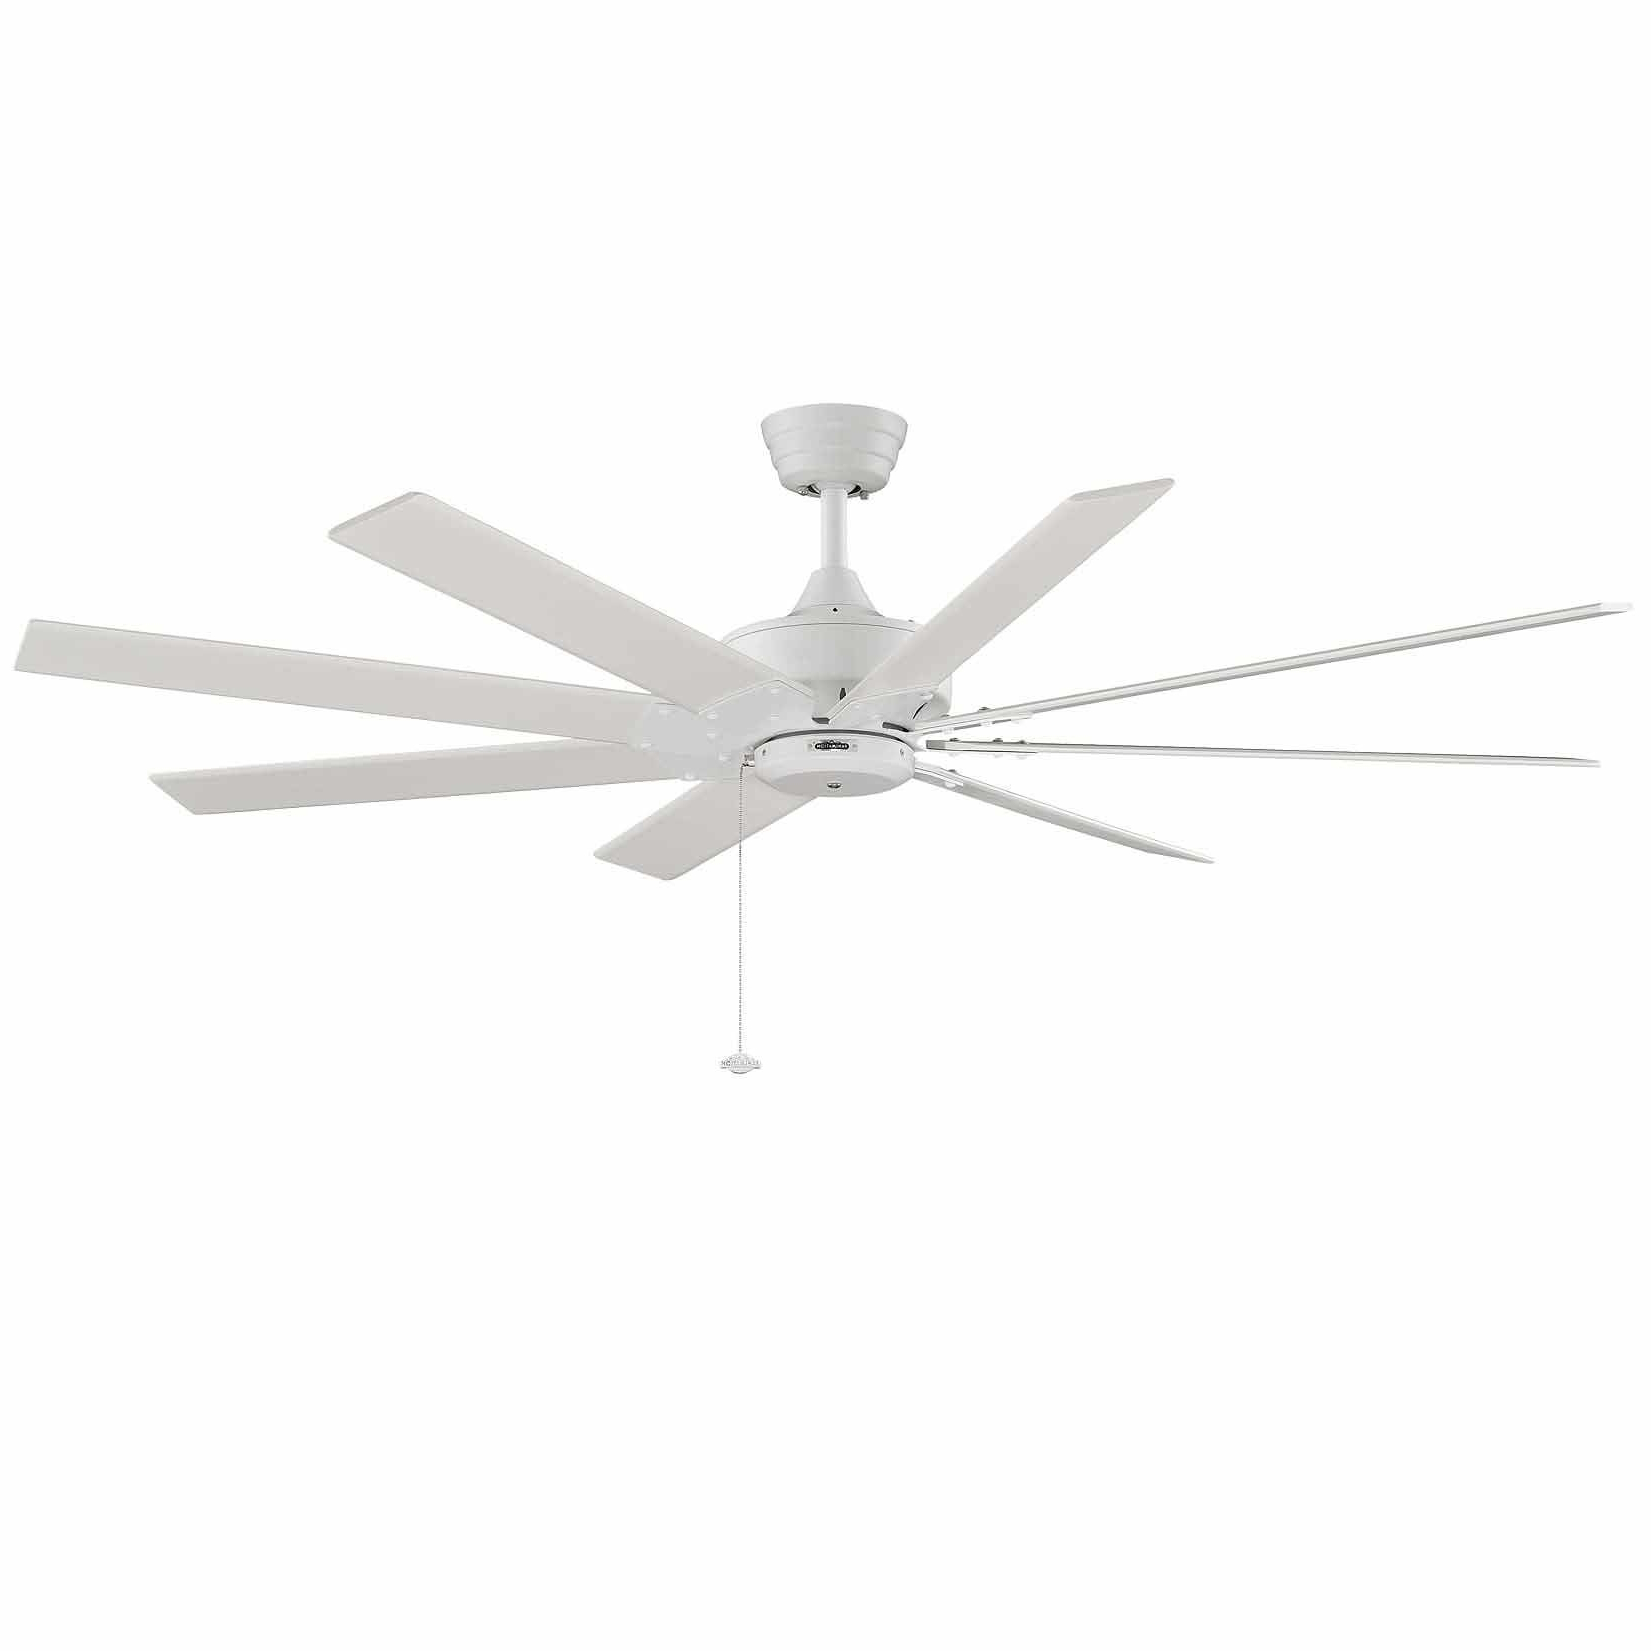 "Levon 8 Blade Ceiling Fans Regarding Most Current Details About Fanimation Levon Matte White 63"" 8 Blade Ceiling Fan – Blades Included (View 2 of 20)"